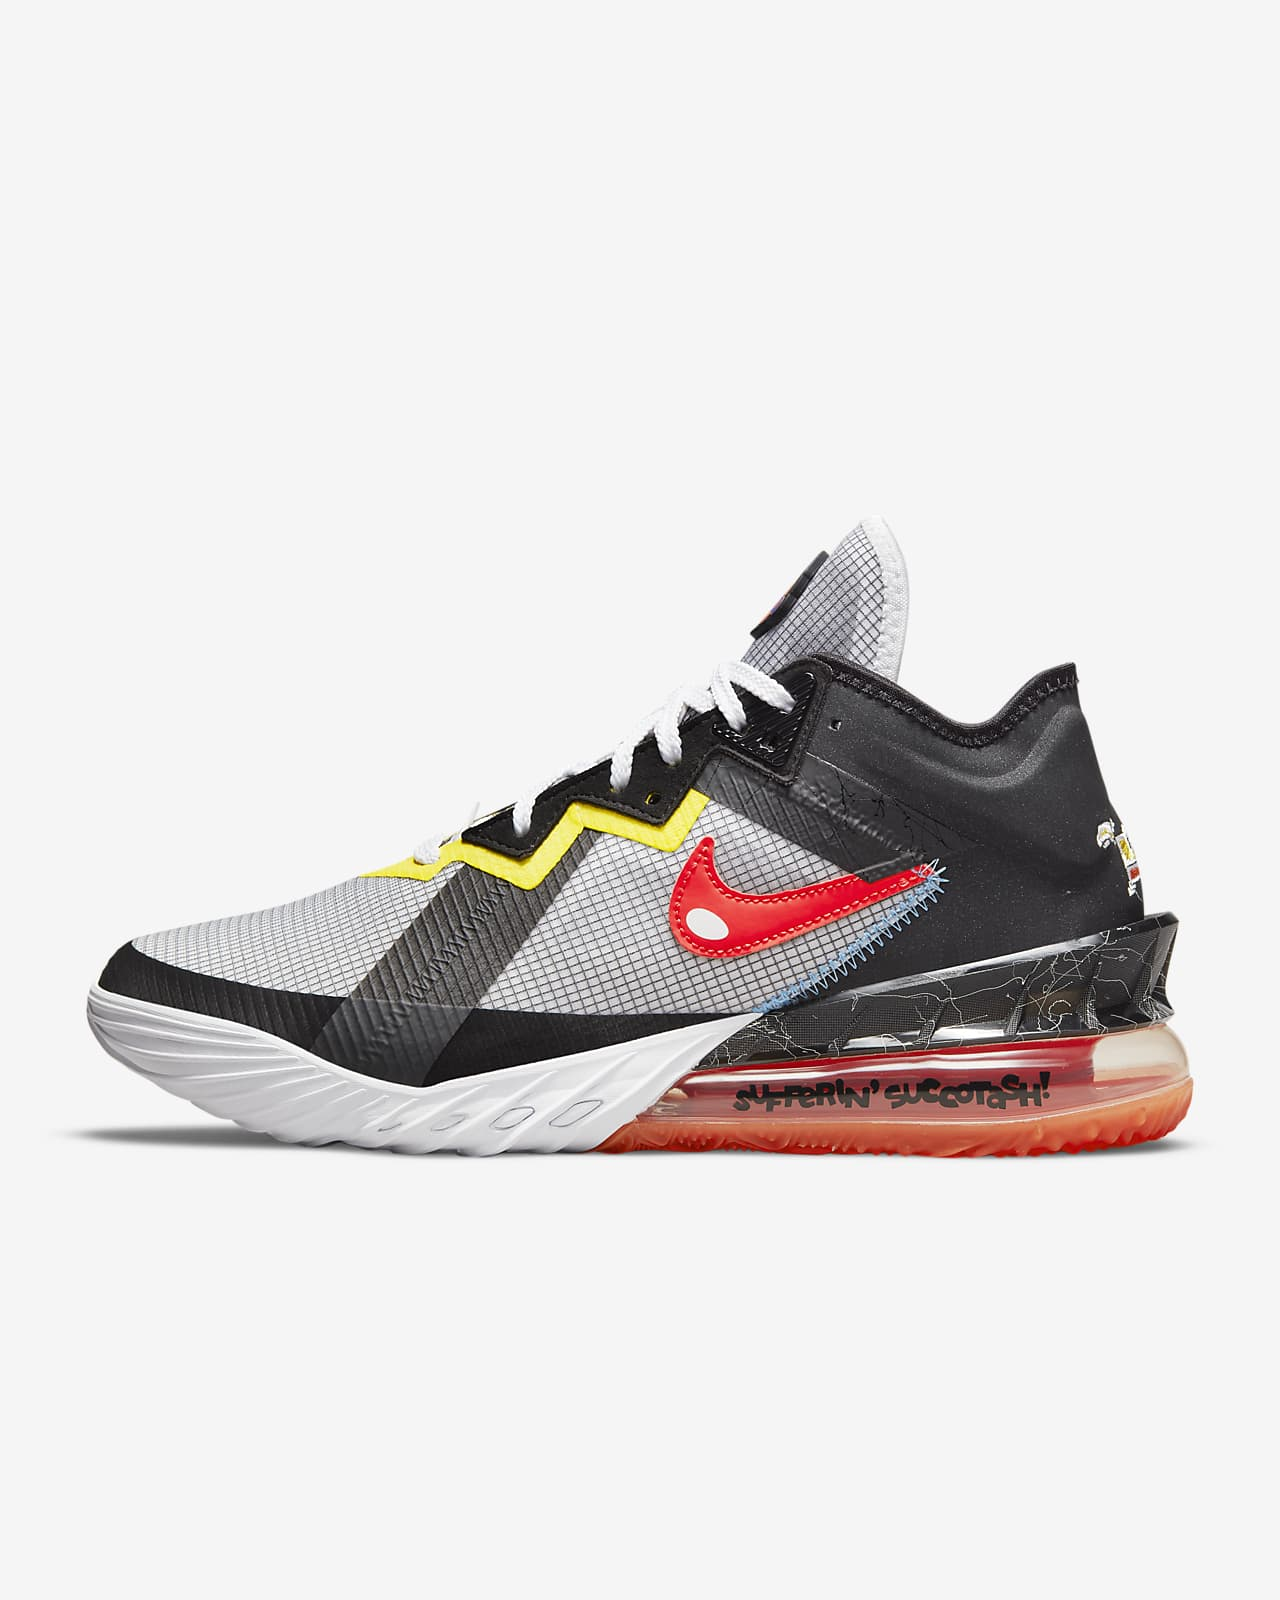 LeBron 18 Low 'Sylvester vs Tweety' Basketball Shoes